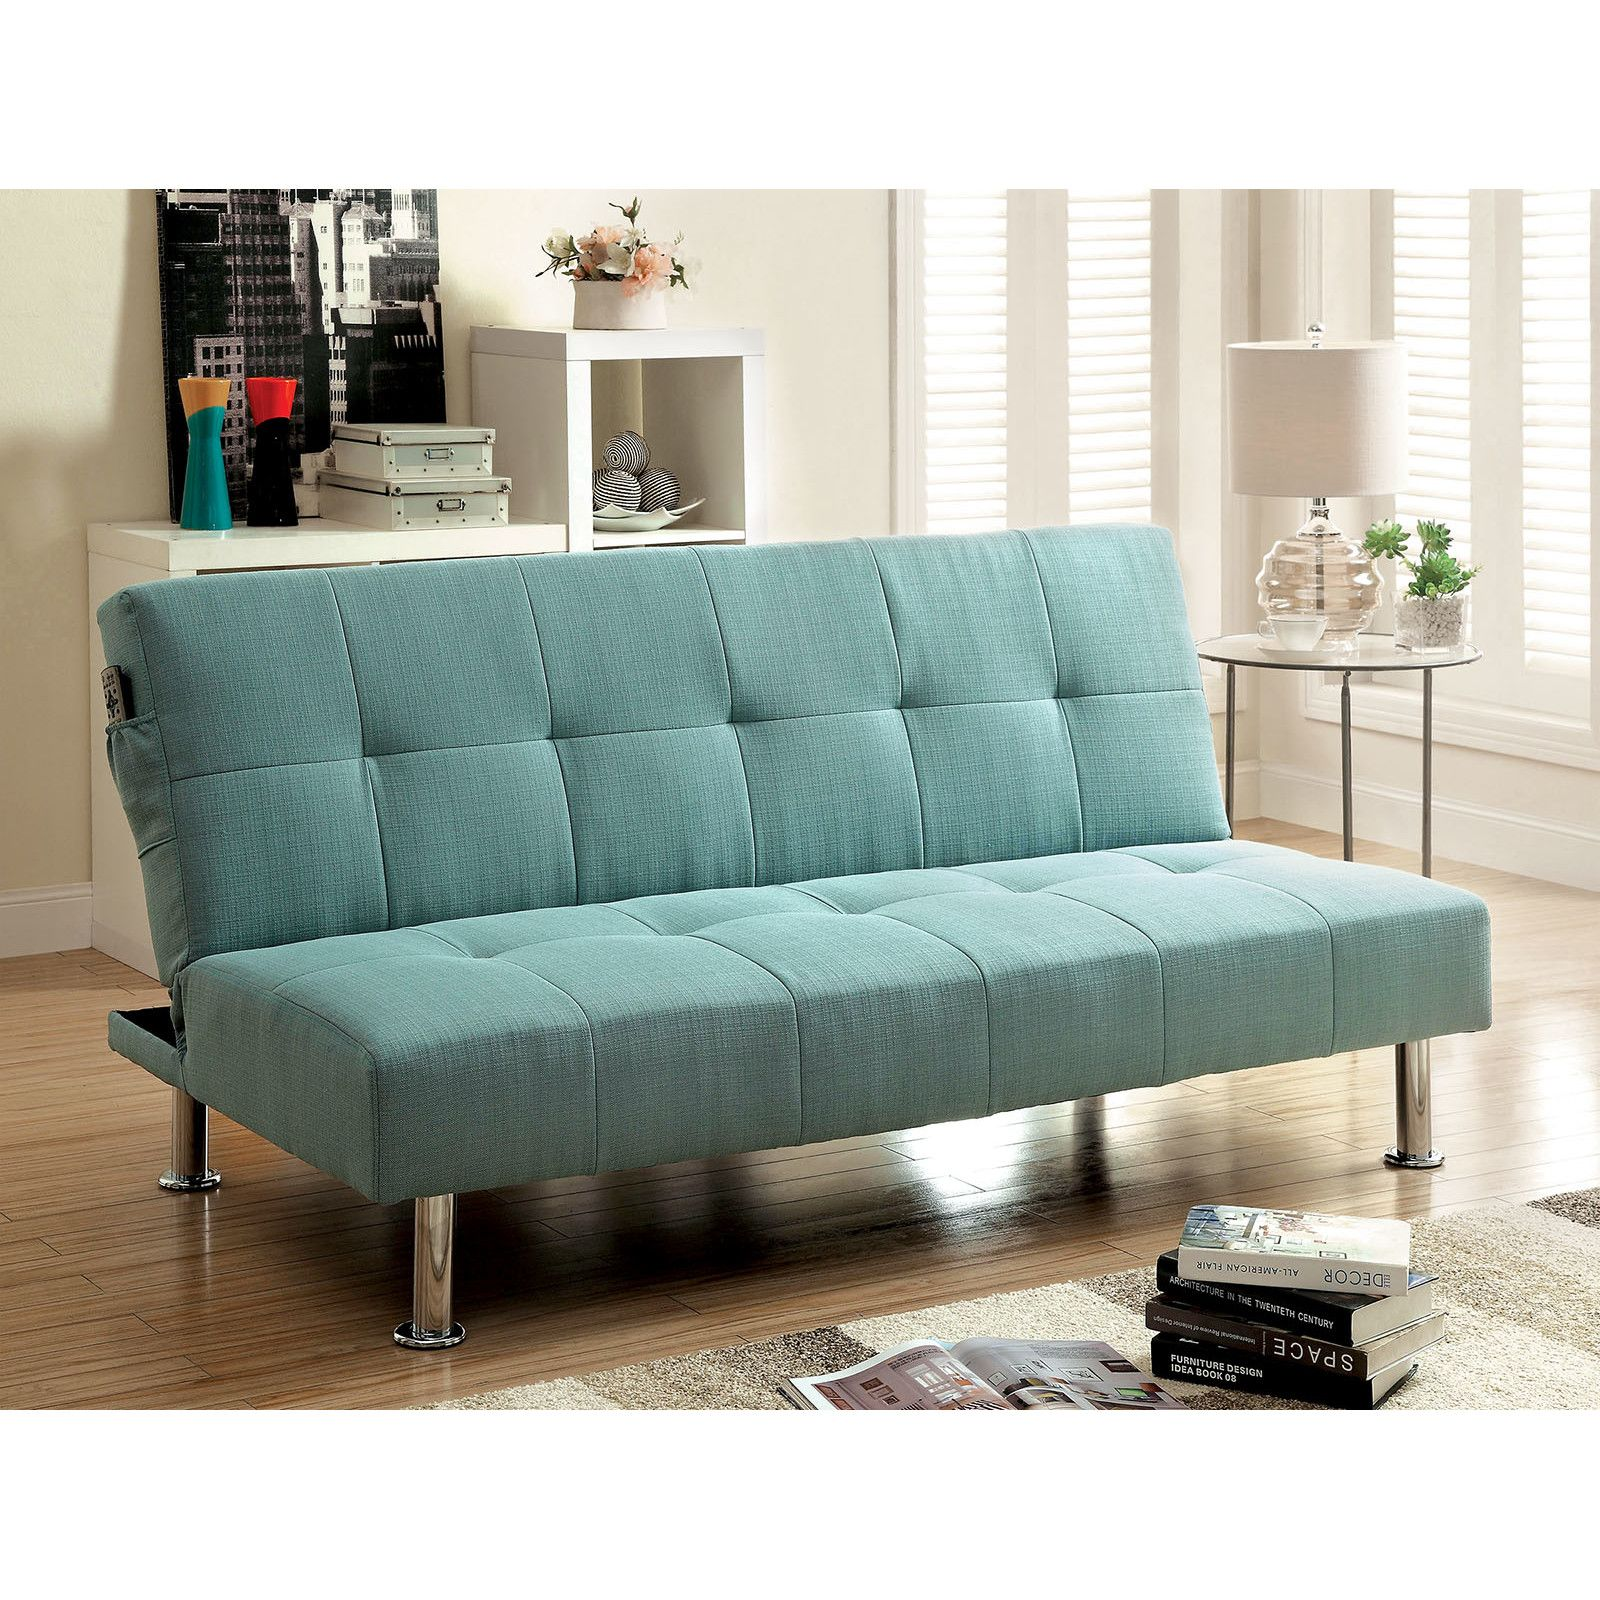 You Ll Love The Tufted Futon Sleeper Sofa At Wayfair Great Deals On All Furniture Products With Free Shipping With Images Futon Sofa Futon Sofa Bed Furniture Of America